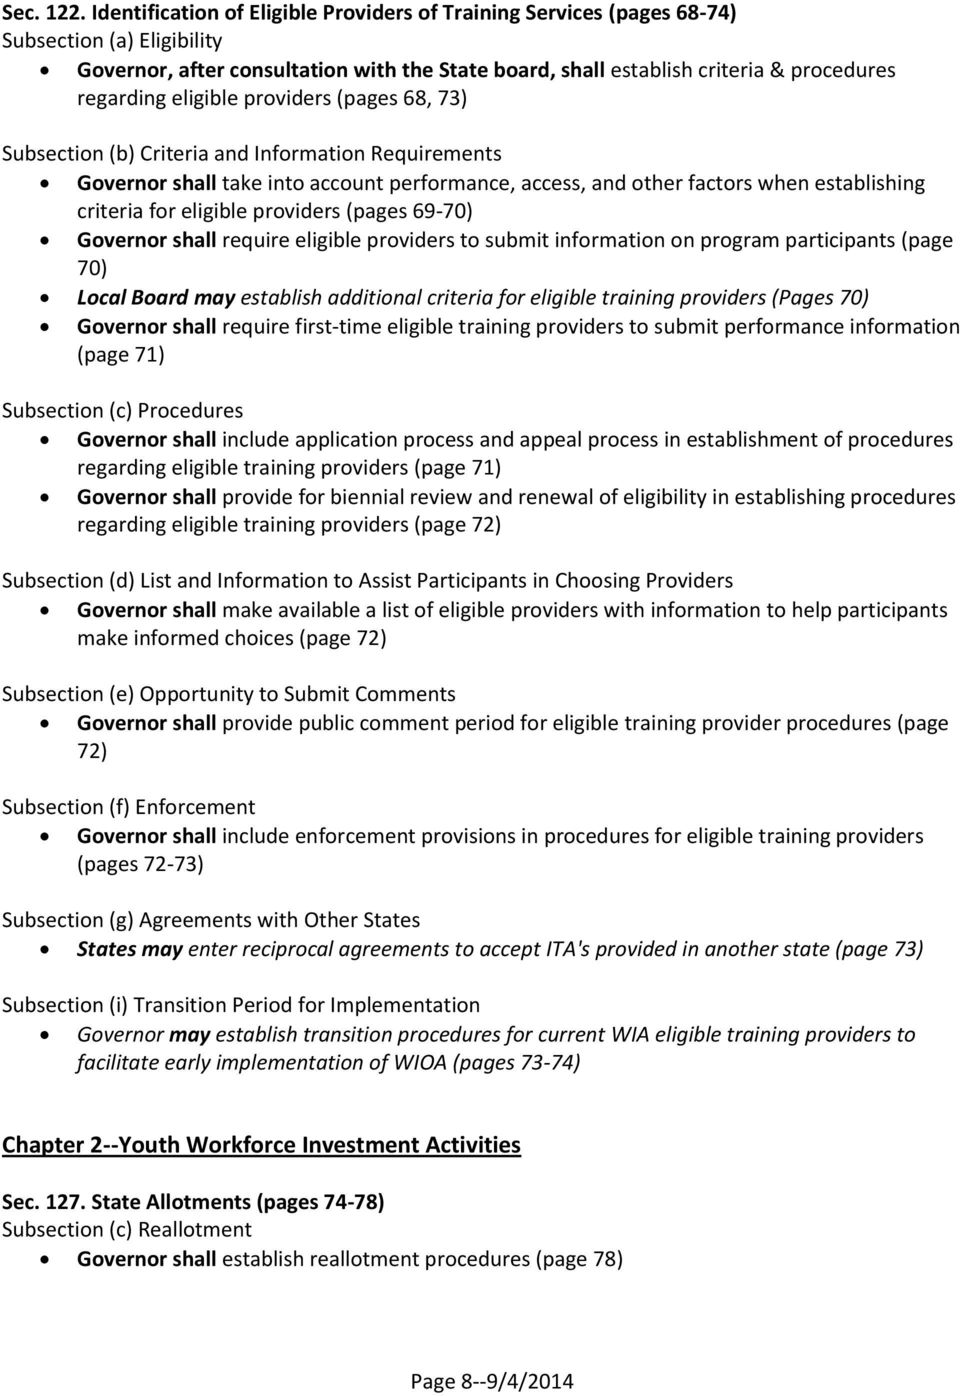 eligible providers (pages 68, 73) Subsection (b) Criteria and Information Requirements Governor shall take into account performance, access, and other factors when establishing criteria for eligible